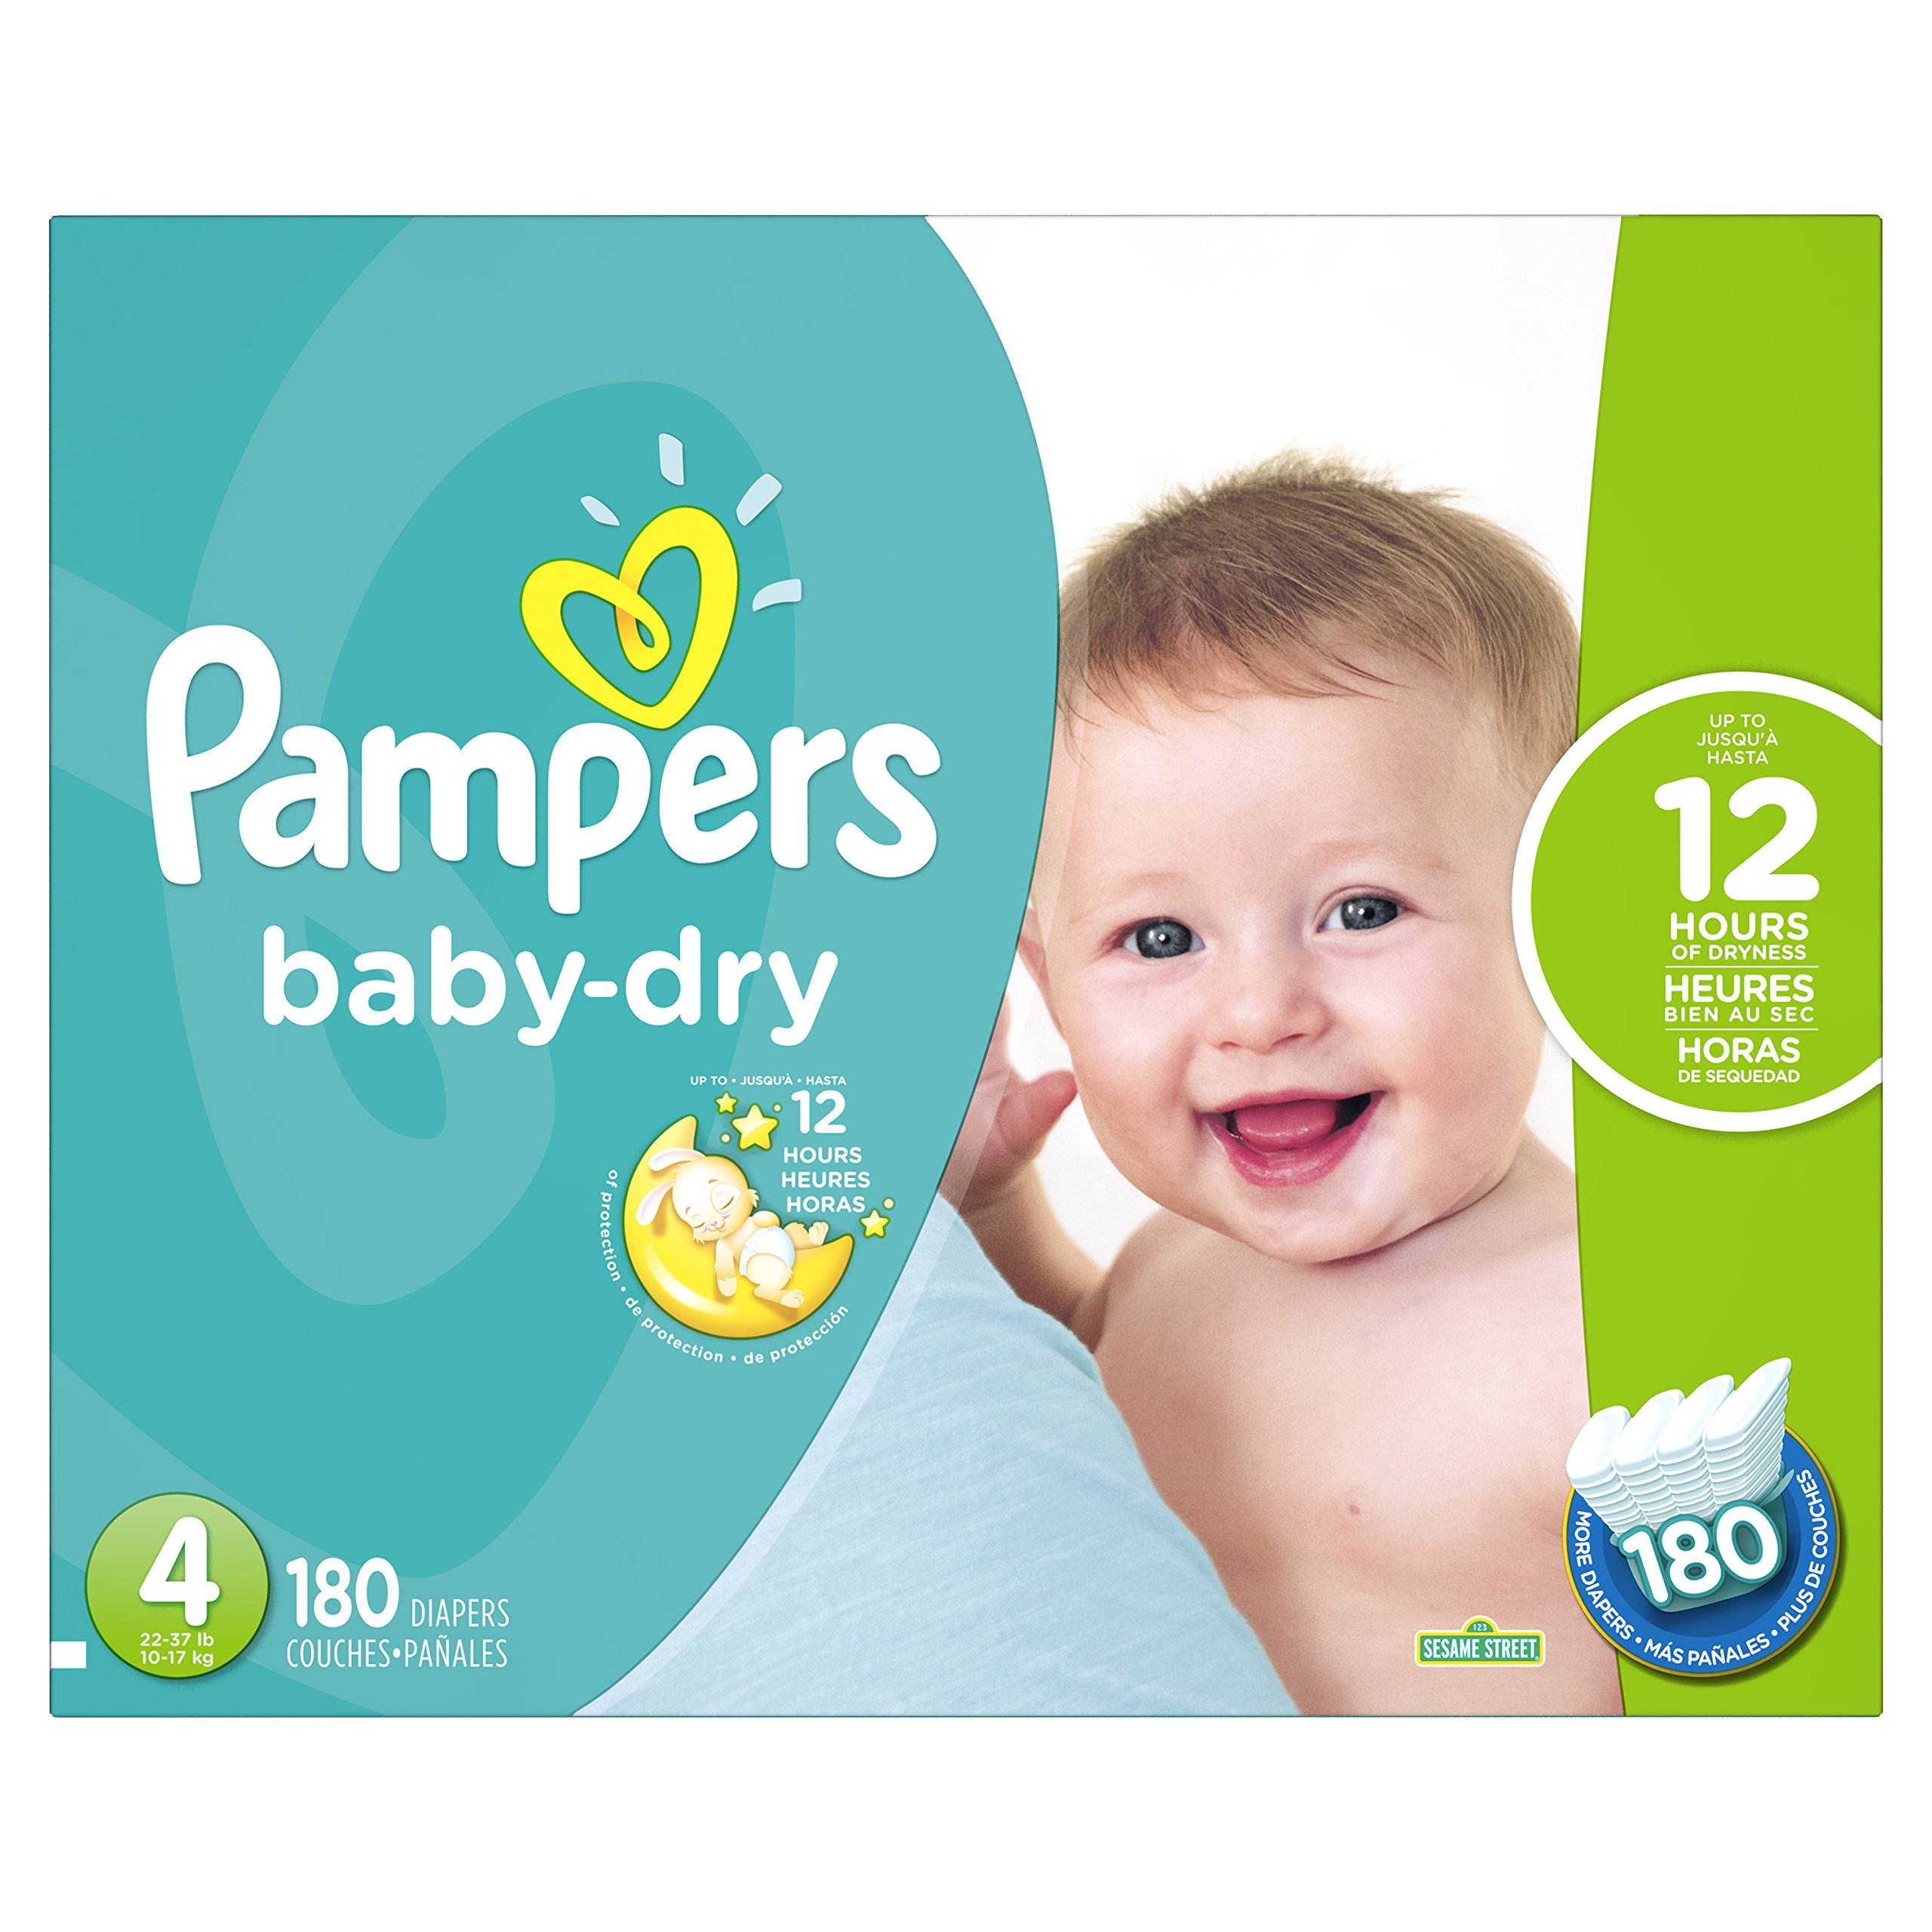 Pampers Baby-Dry Disposable Diapers Size 4, 180 Count, ECONOMY PACK PLUS by Pampers